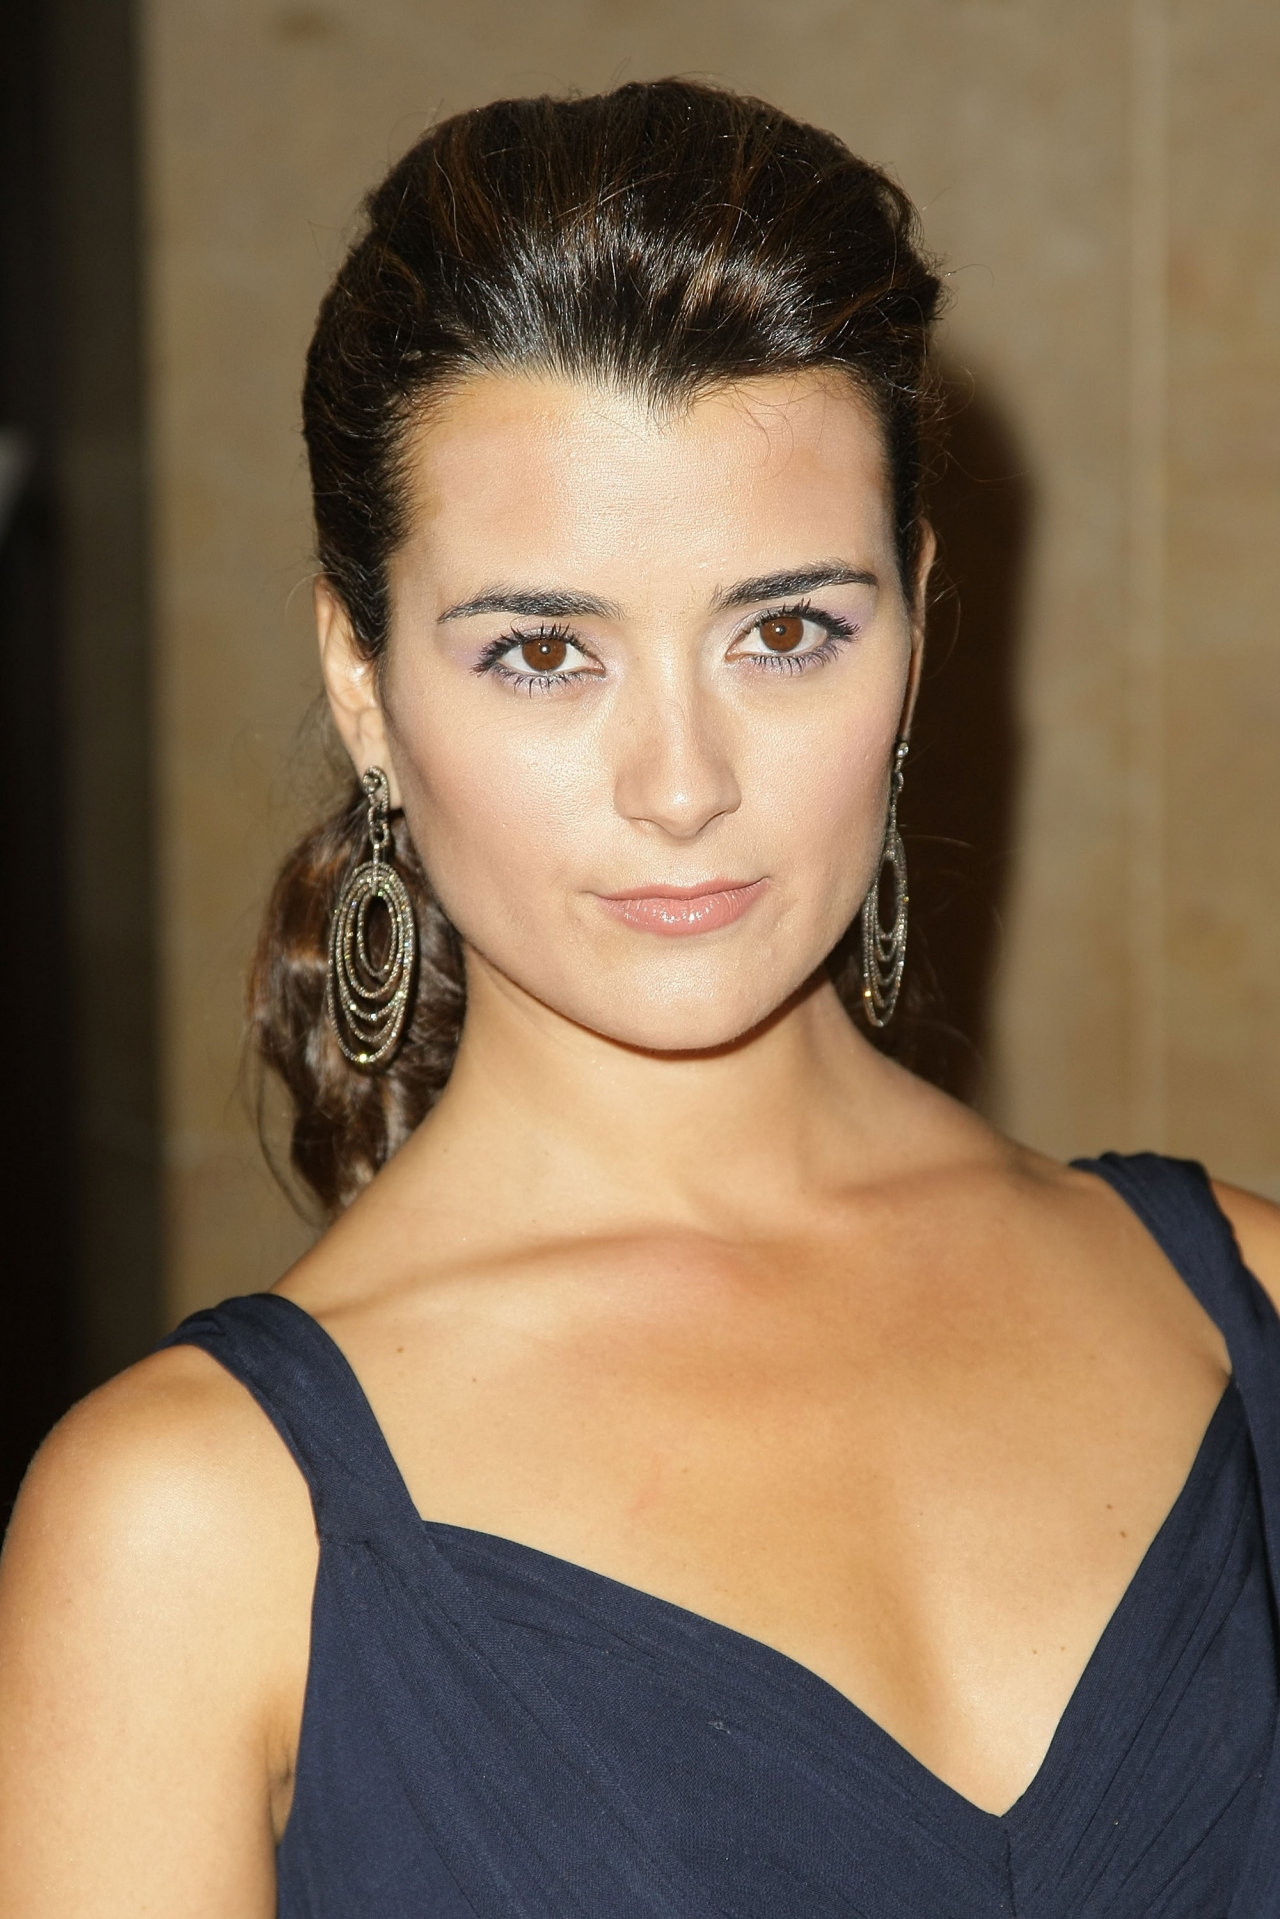 Model cote de pablo wallpapers 7194